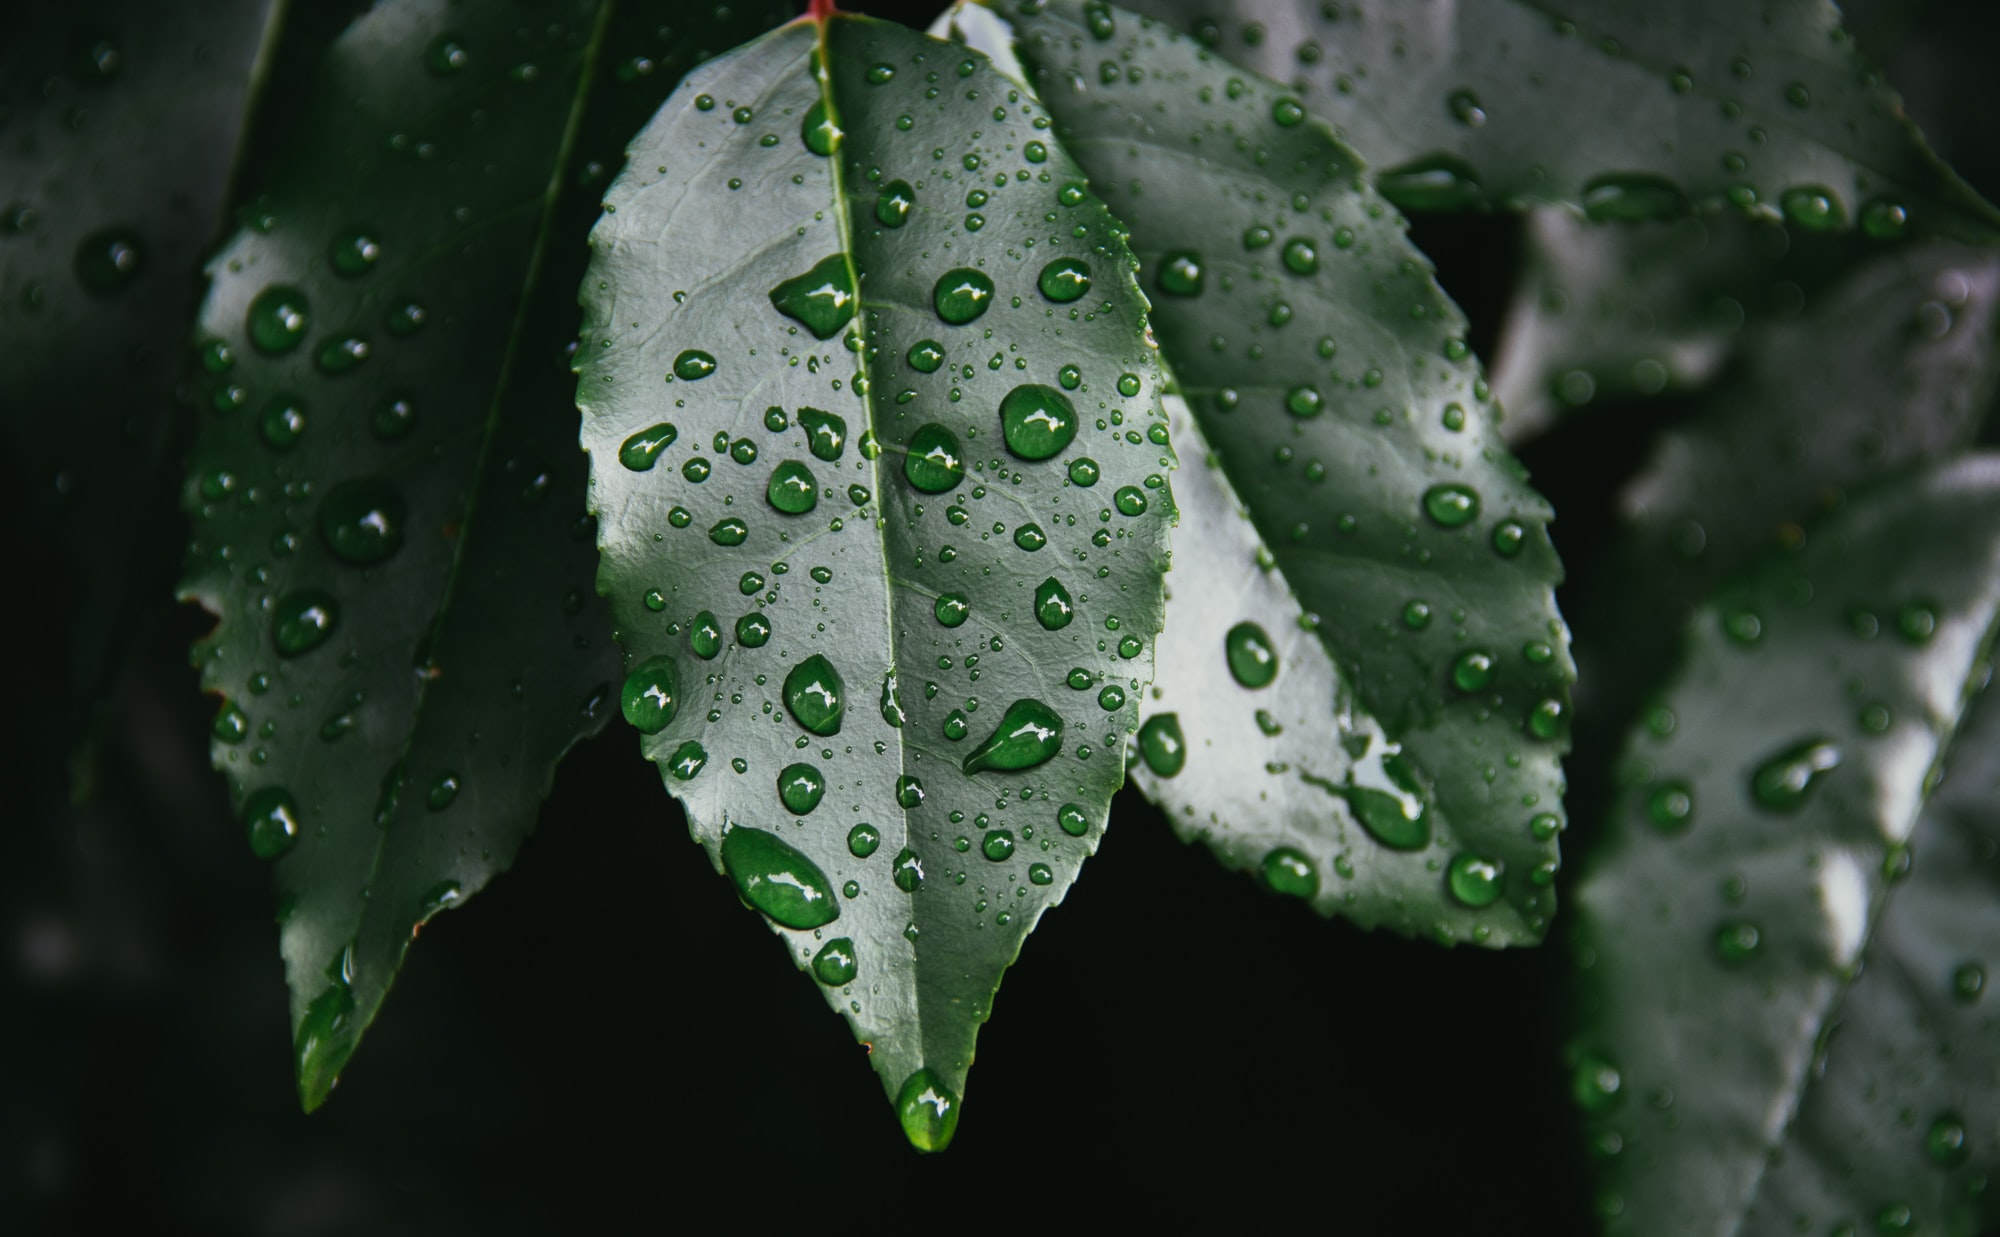 Droplets of water on glossy dark green leaves